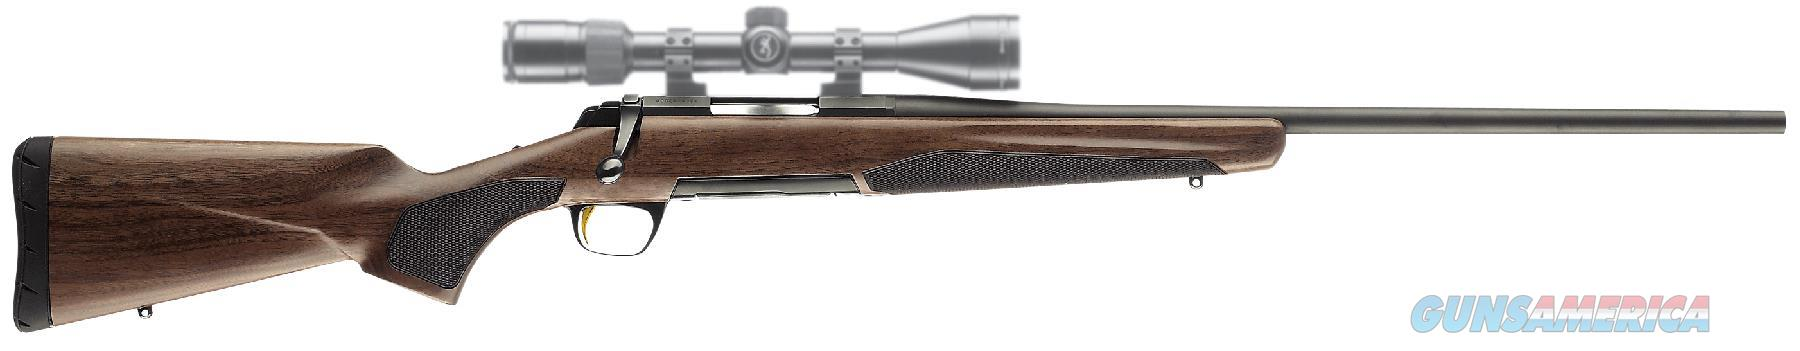 BROWNING XBOLT HUNTER 375HH OPEN SIGHTS 035208132  Guns > Rifles > Browning Rifles > Bolt Action > Hunting > Blue